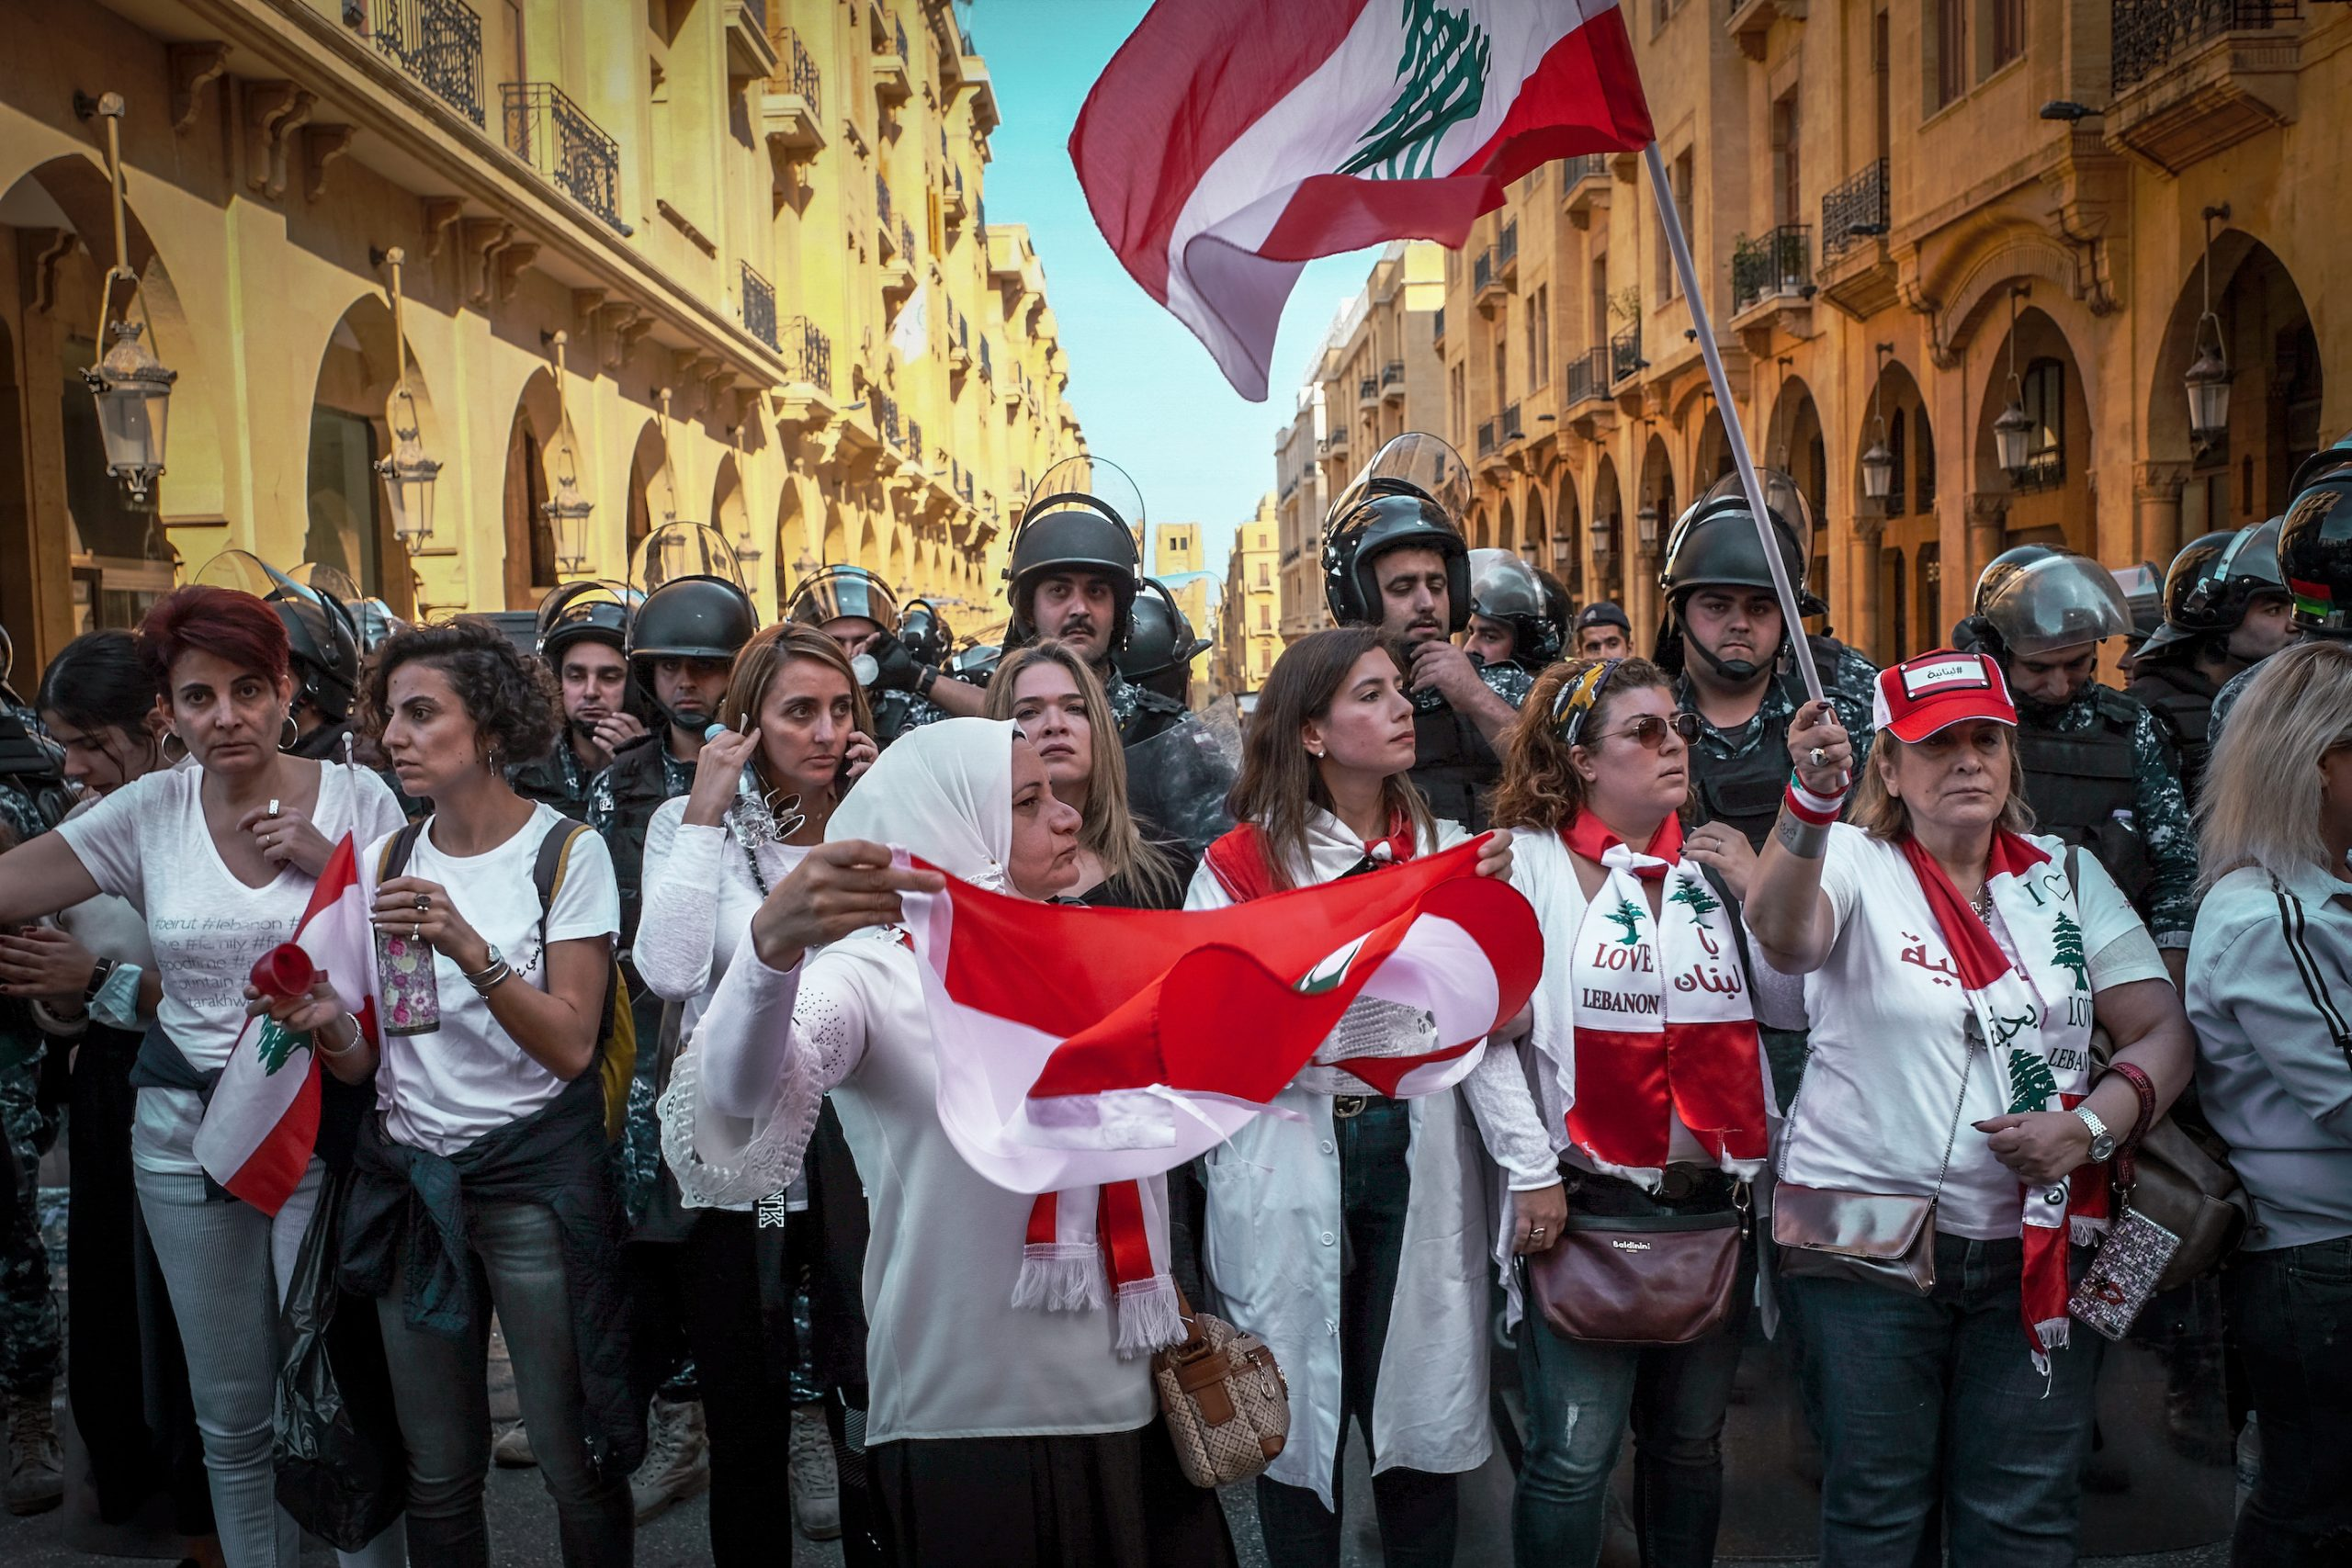 Women in front. Beirut, November 2019.